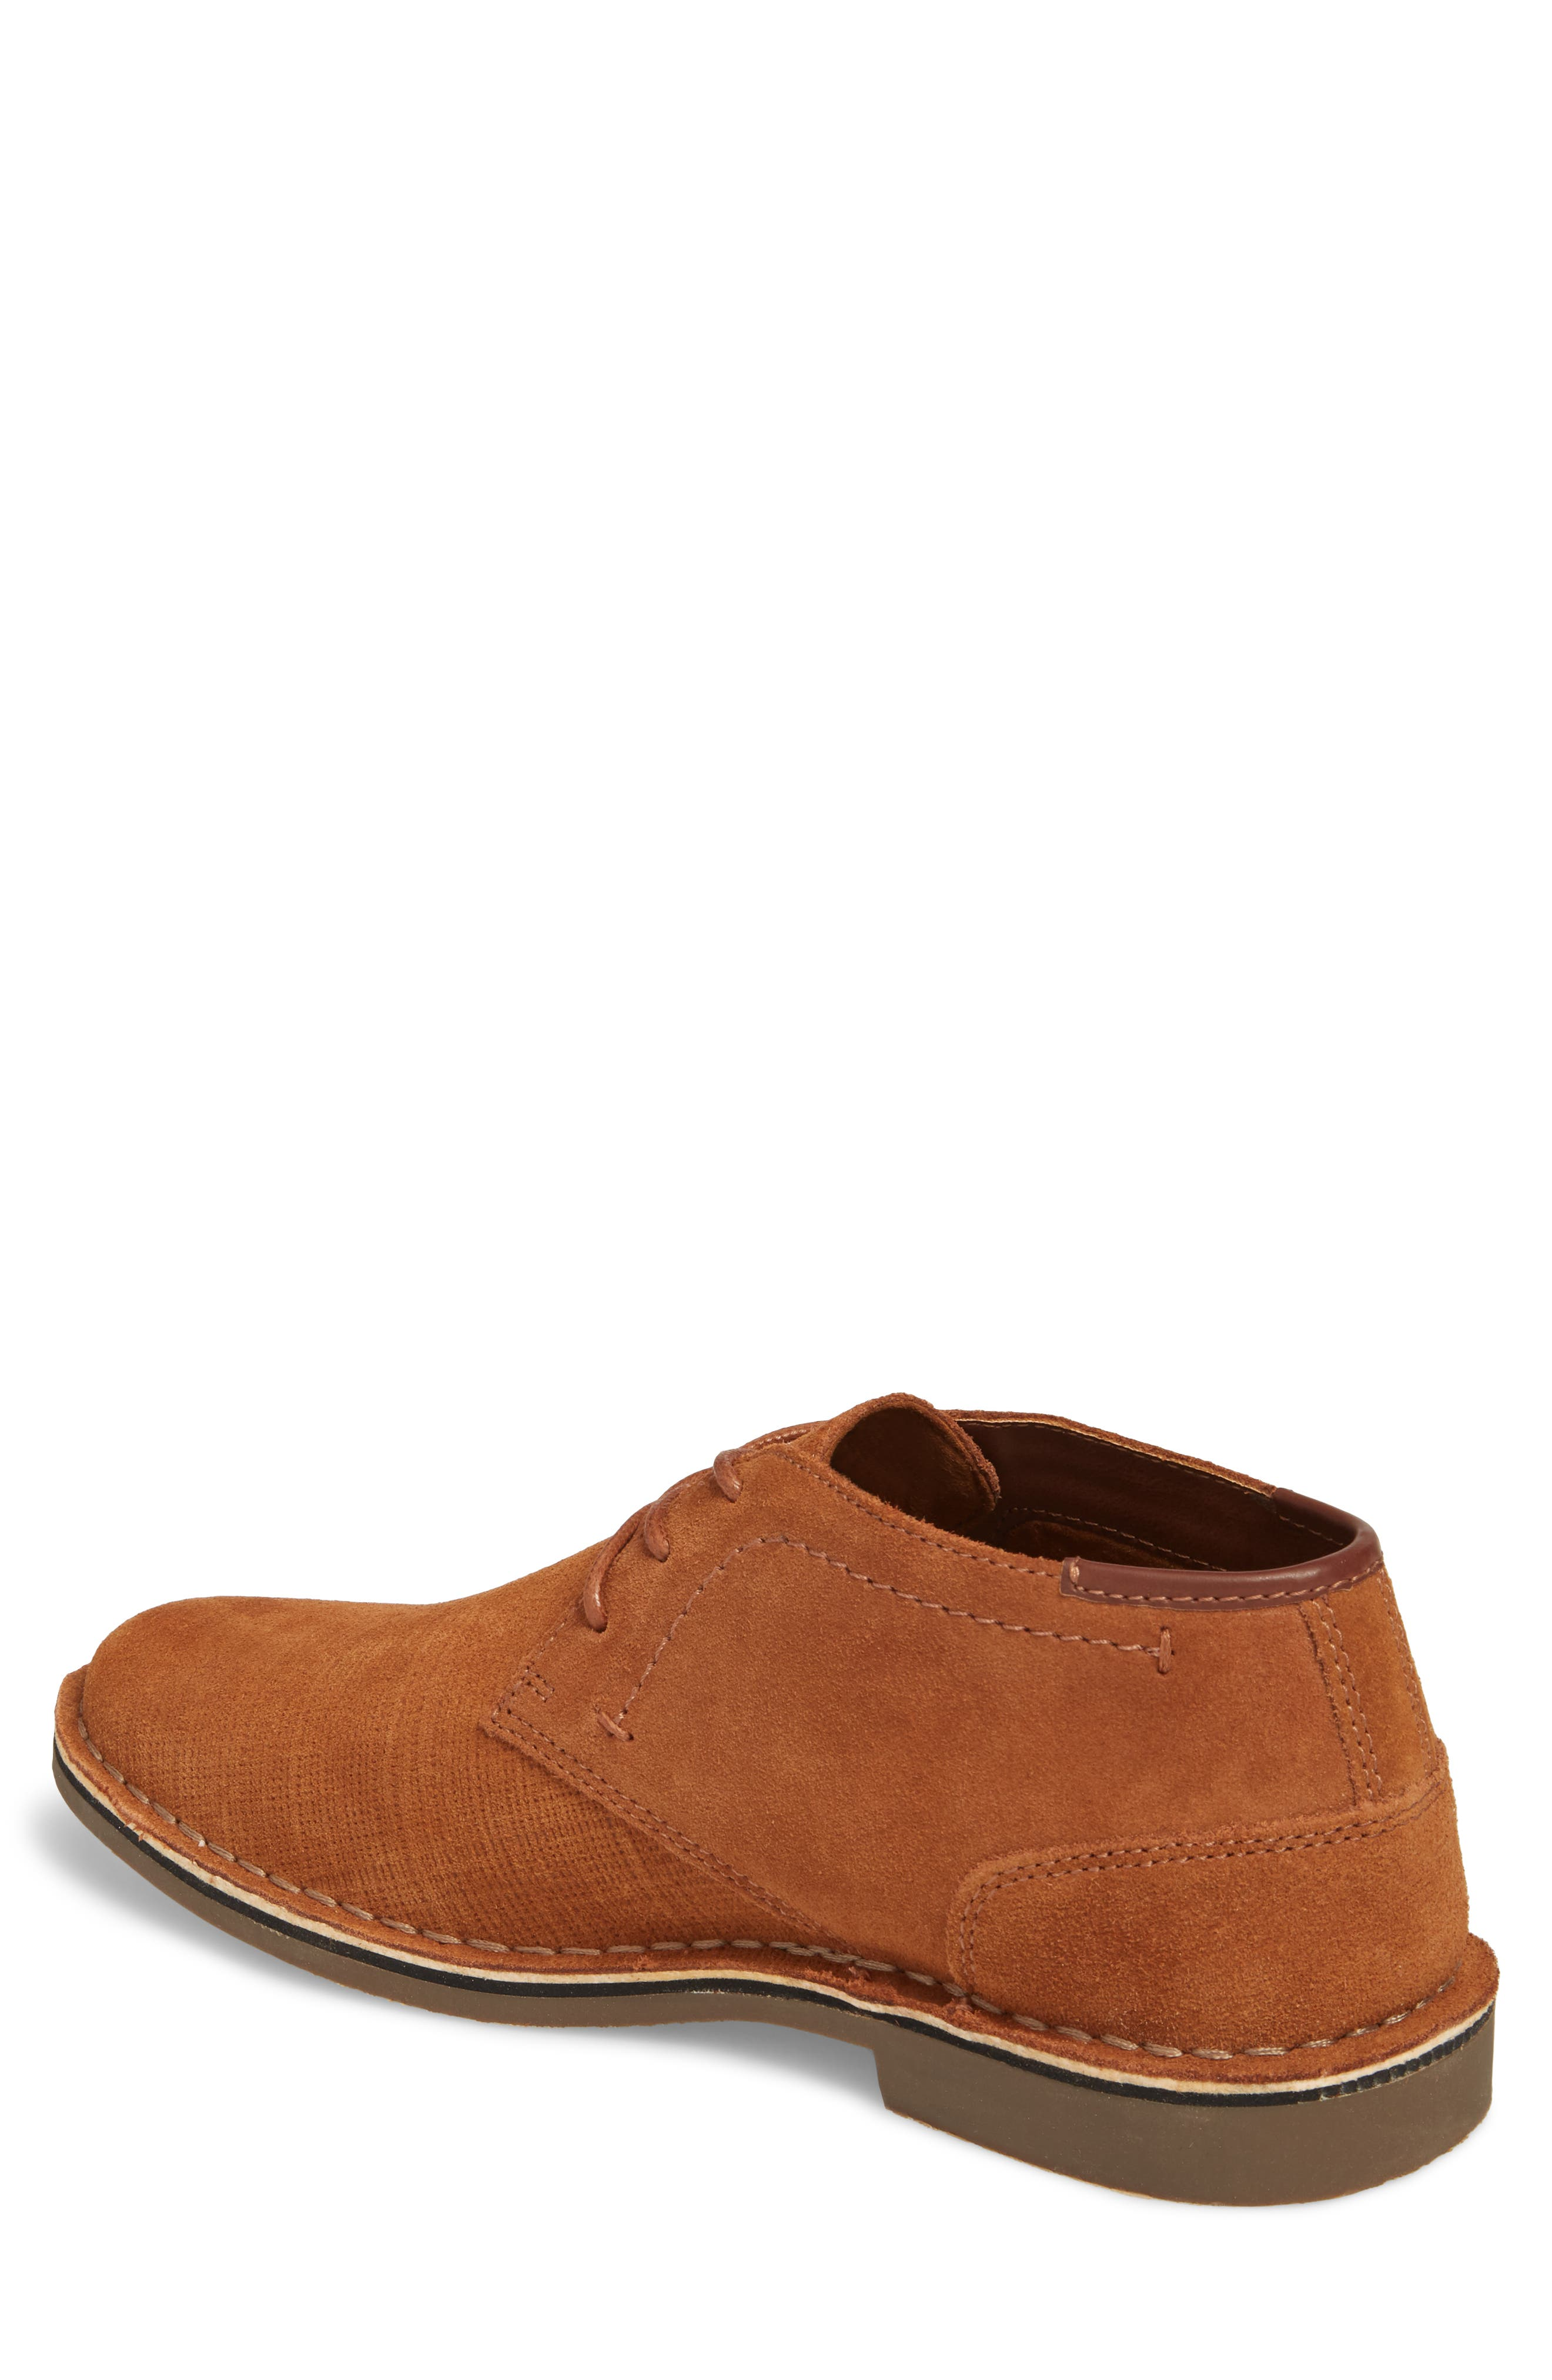 Desert Sun Textured Chukka Boot,                             Alternate thumbnail 3, color,